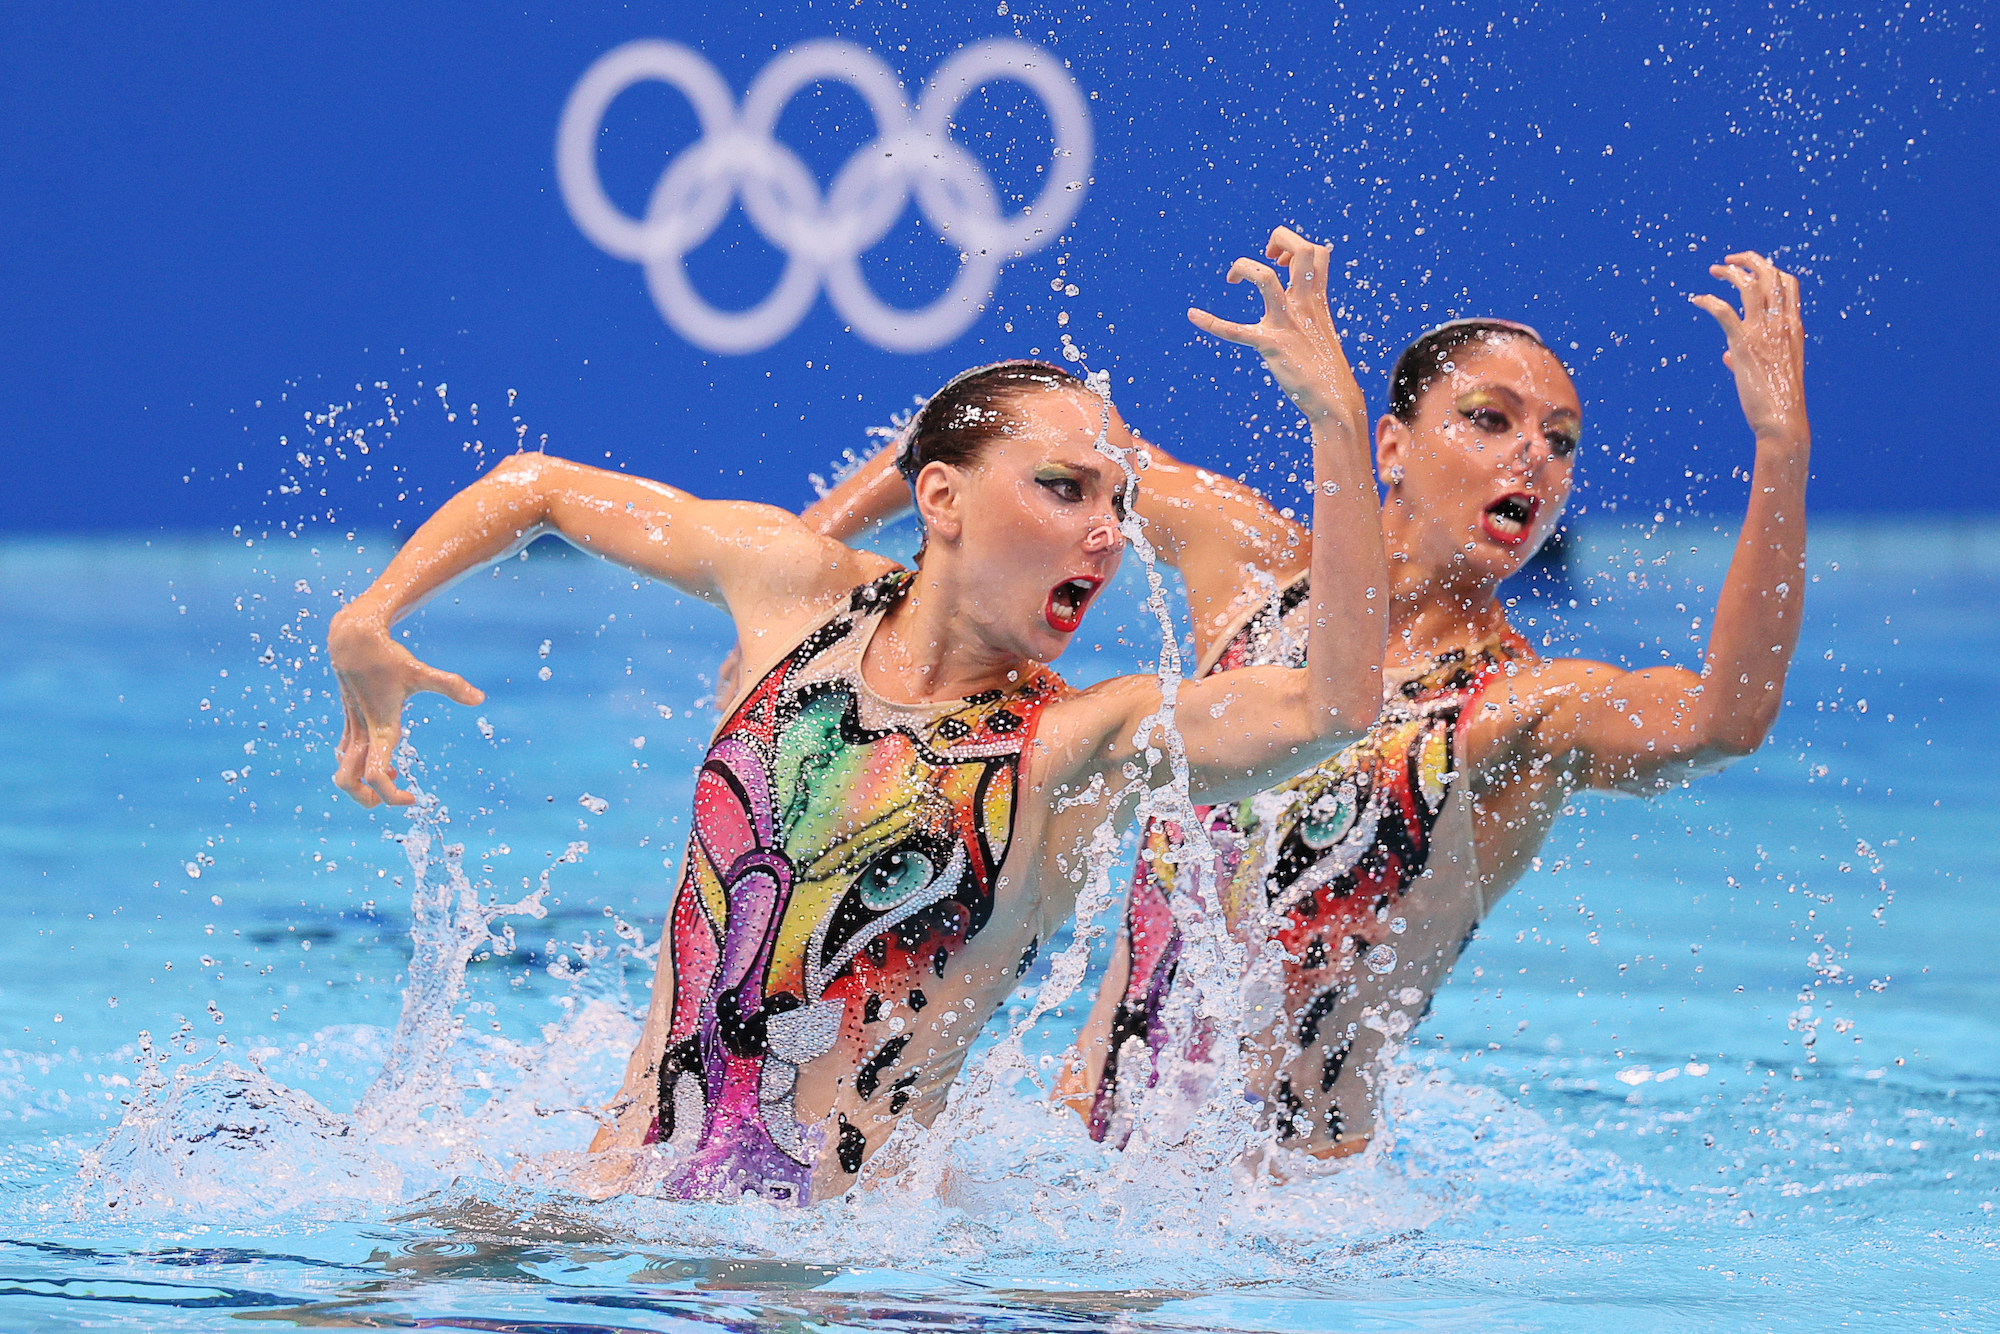 Two women swimmers perform in the pool at the Tokyo Olympics with their arms in front of and behind them